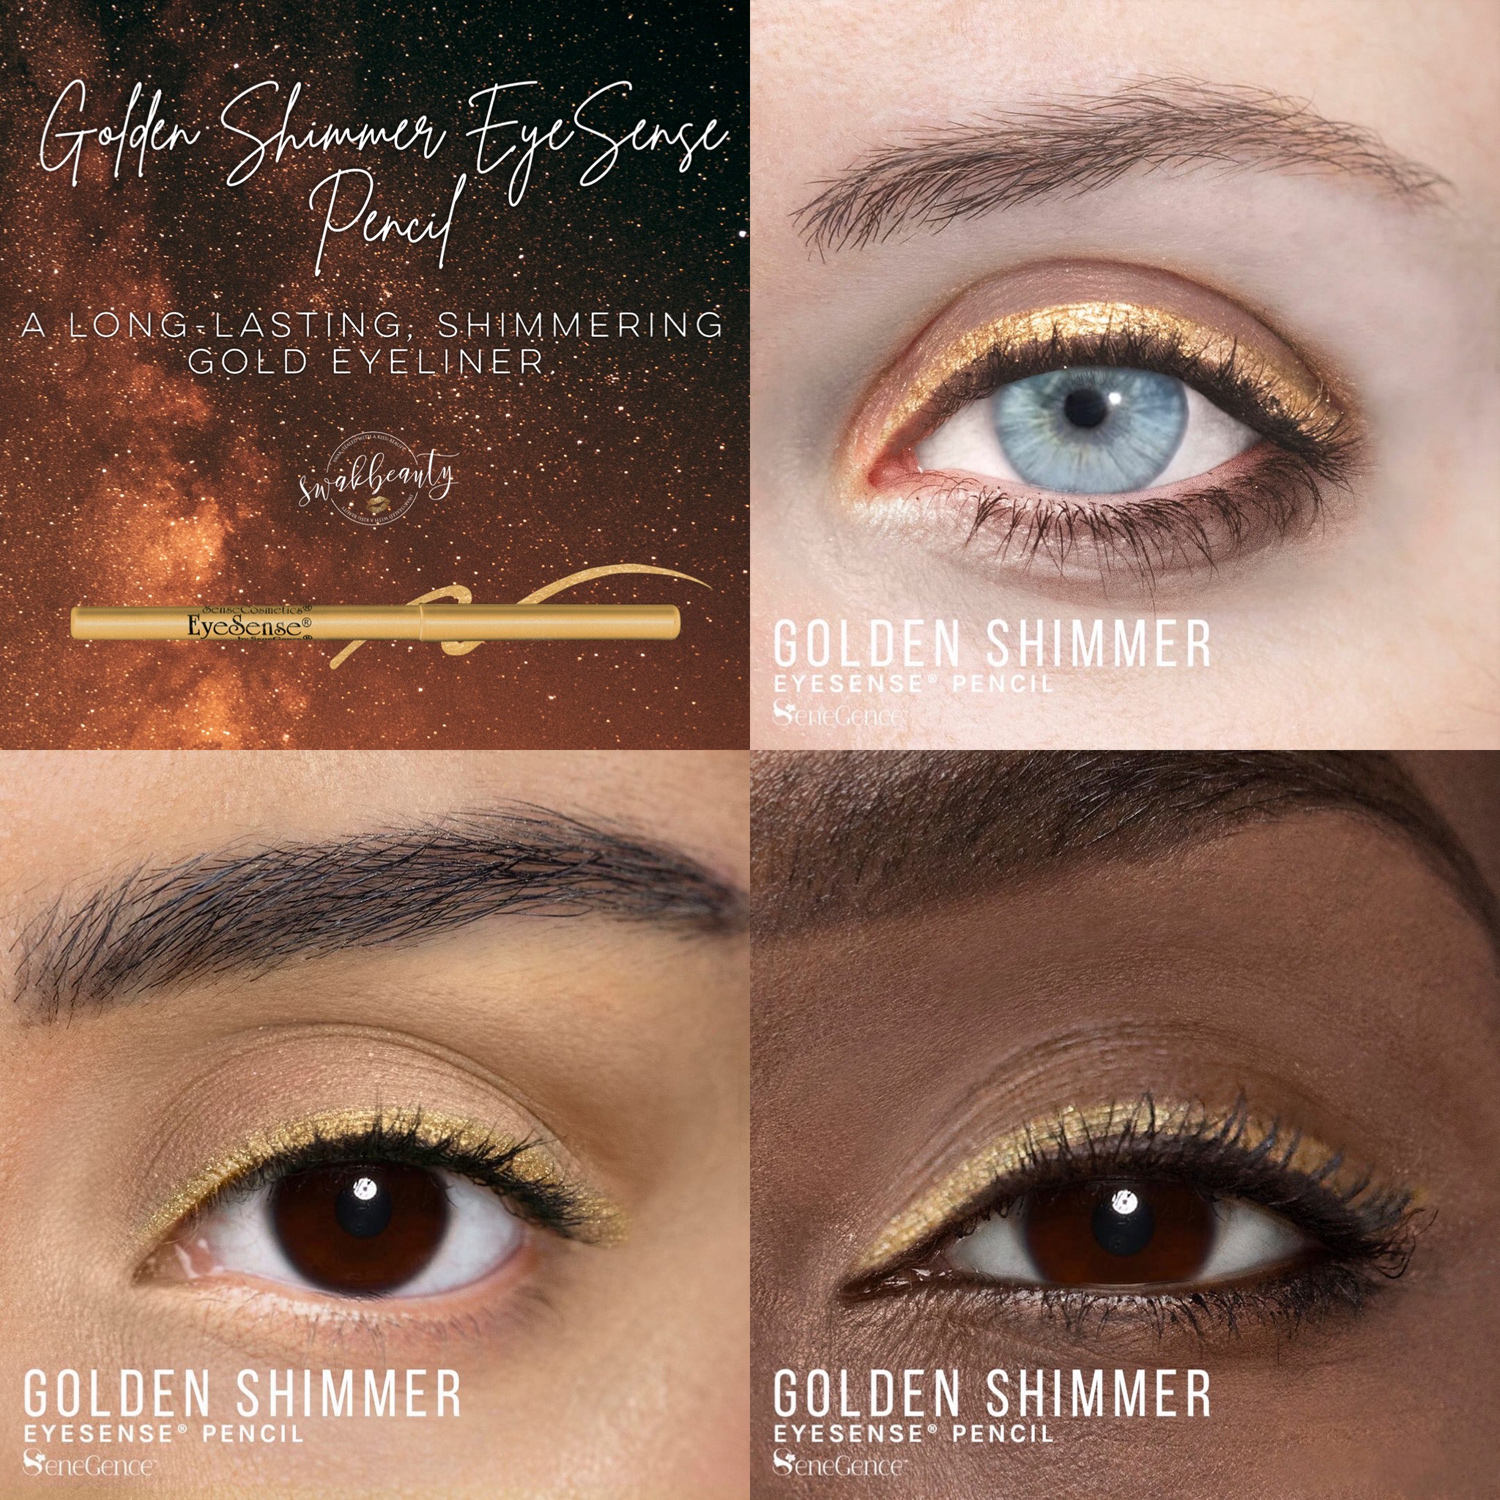 Golden Shimmer Eyesense Eye Liner Pencil Swakbeauty Com